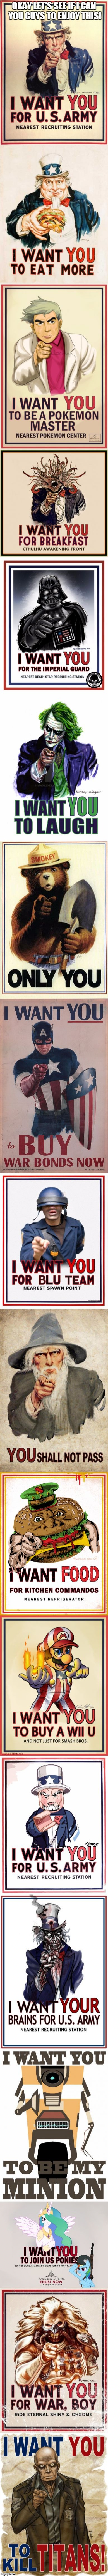 I Want You (Real And Parody Posters) | OKAY LET'S SEE IF I CAN YOU GUYS TO ENJOY THIS! | image tagged in i want you real and parody posters,memes,military,funny,i want you,parody | made w/ Imgflip meme maker